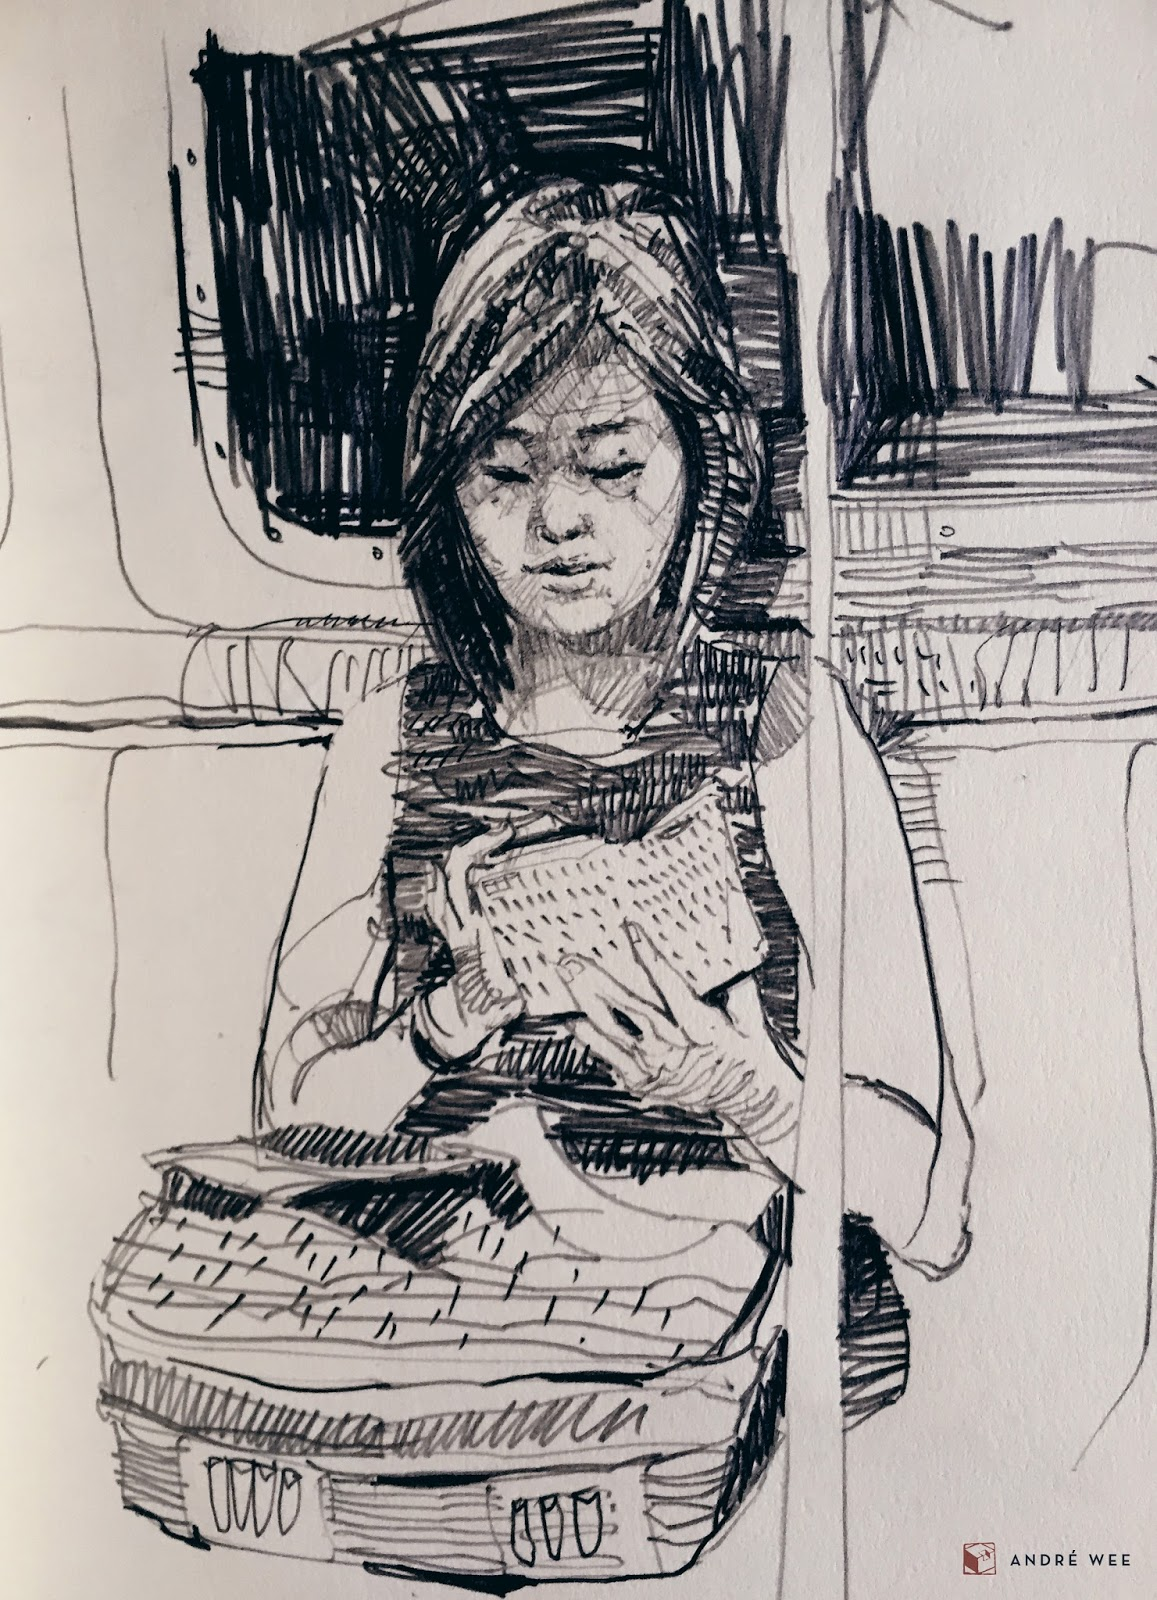 The ride home: Sketches on the subway, New York City